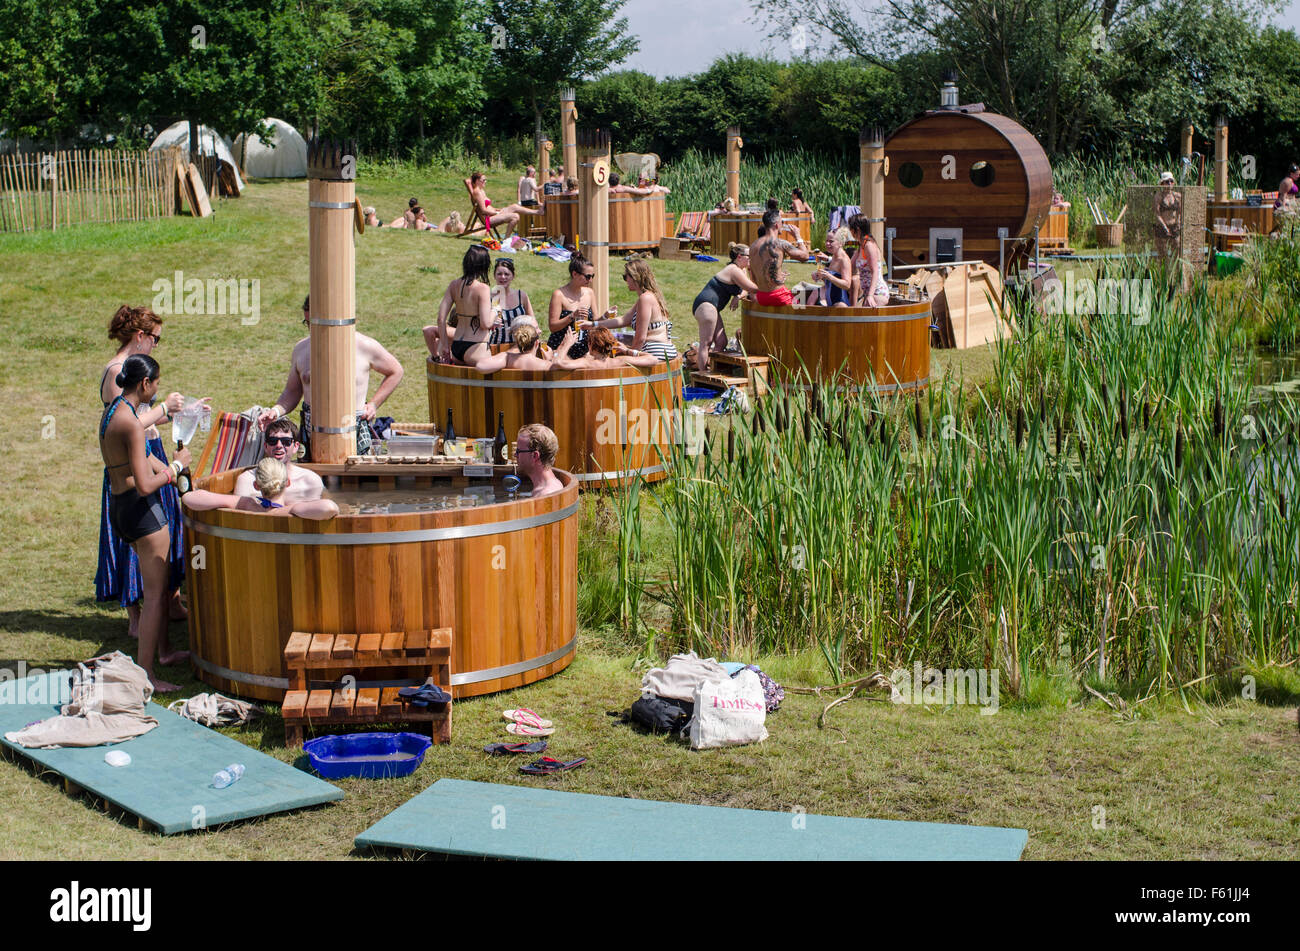 Hot Tubs For Hire   The Secret Garden Party, Abbots Ripton Huntingdon ,  Cambridgeshire 2013